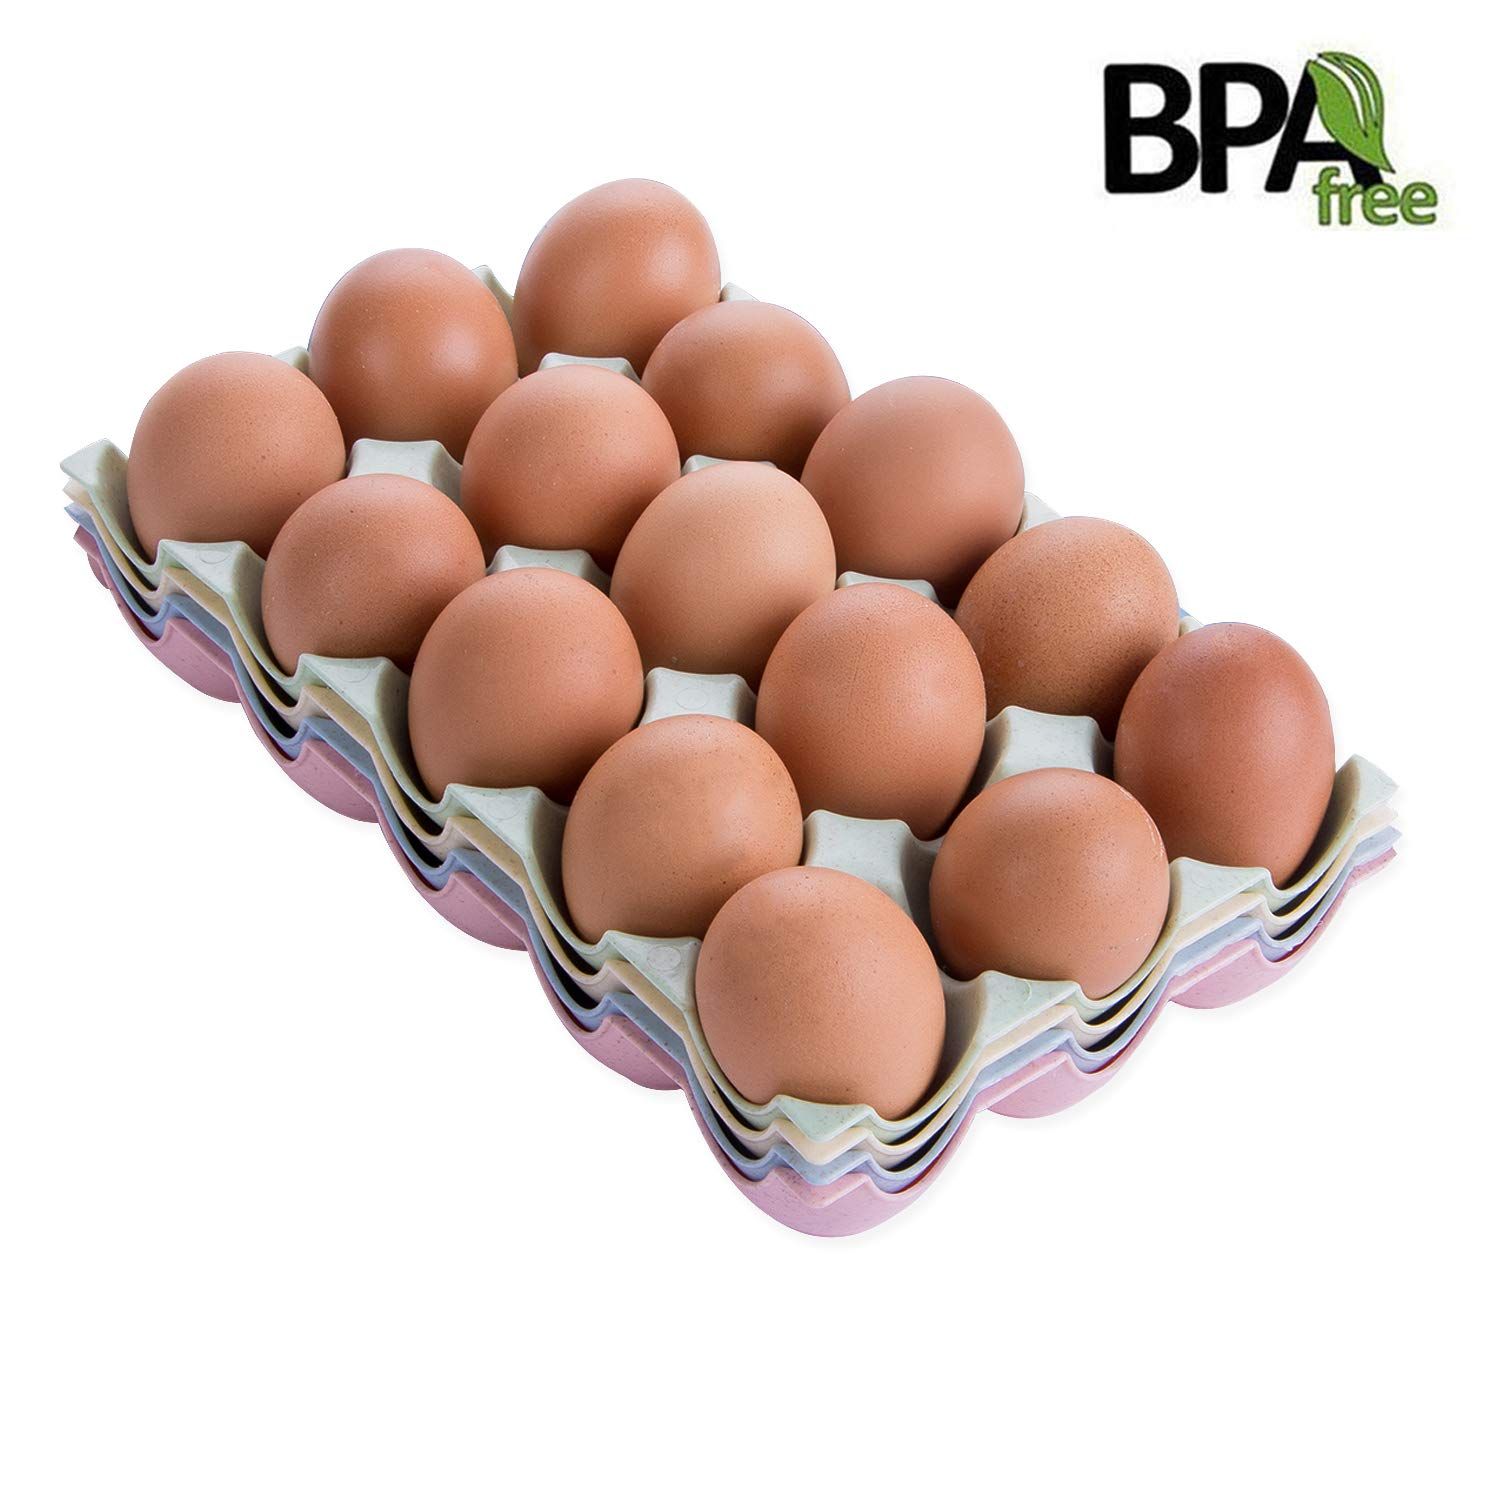 Egg Trays Holder,Eggs Dispenser for 15 Eggs Container,4 Pack Mixed Color